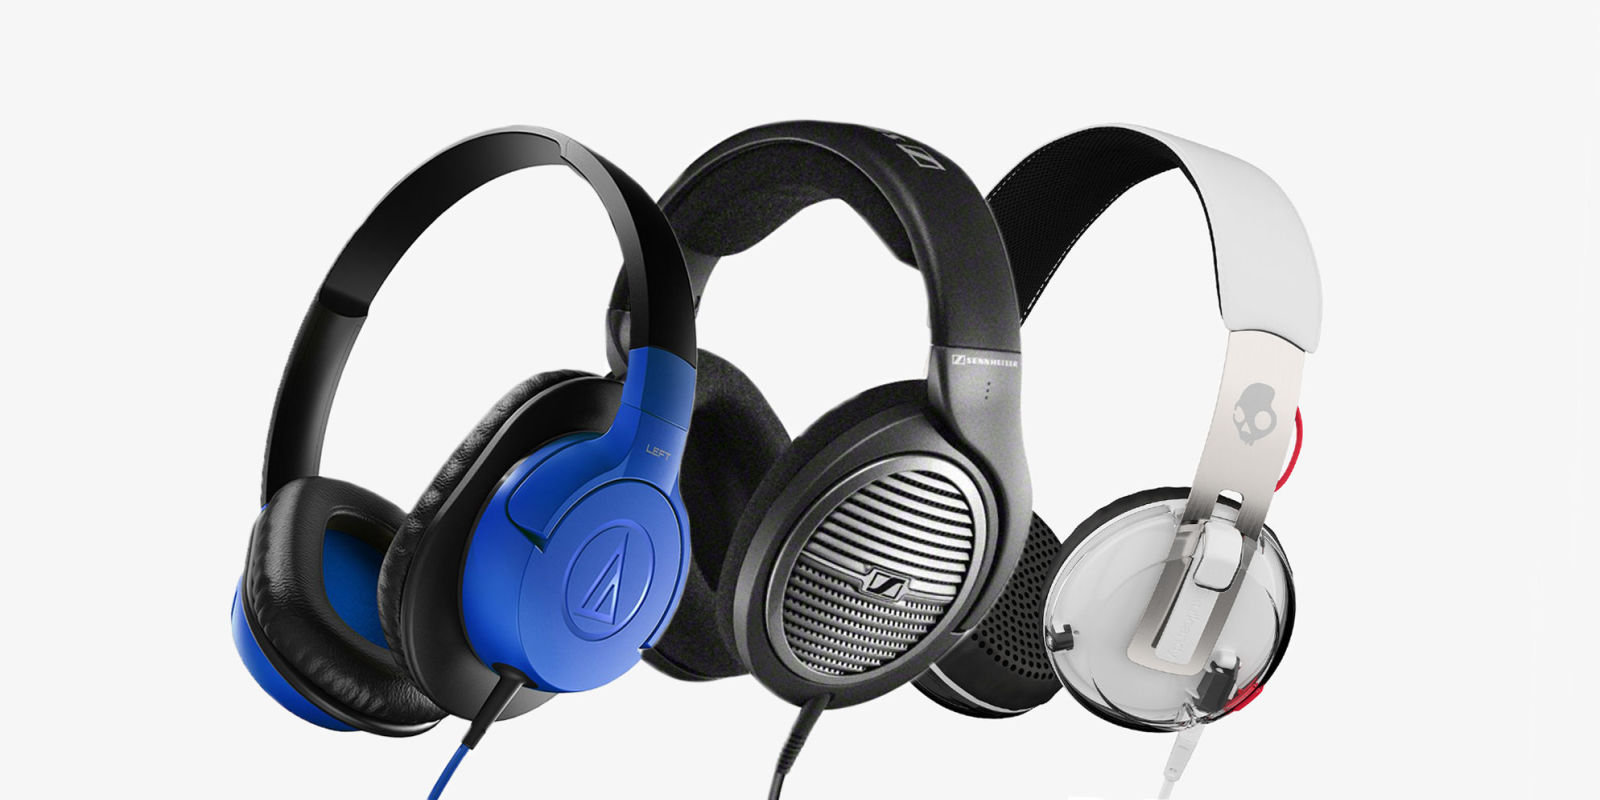 17 Best Headphones Under 100 In 2016 Cheap Yet Quality